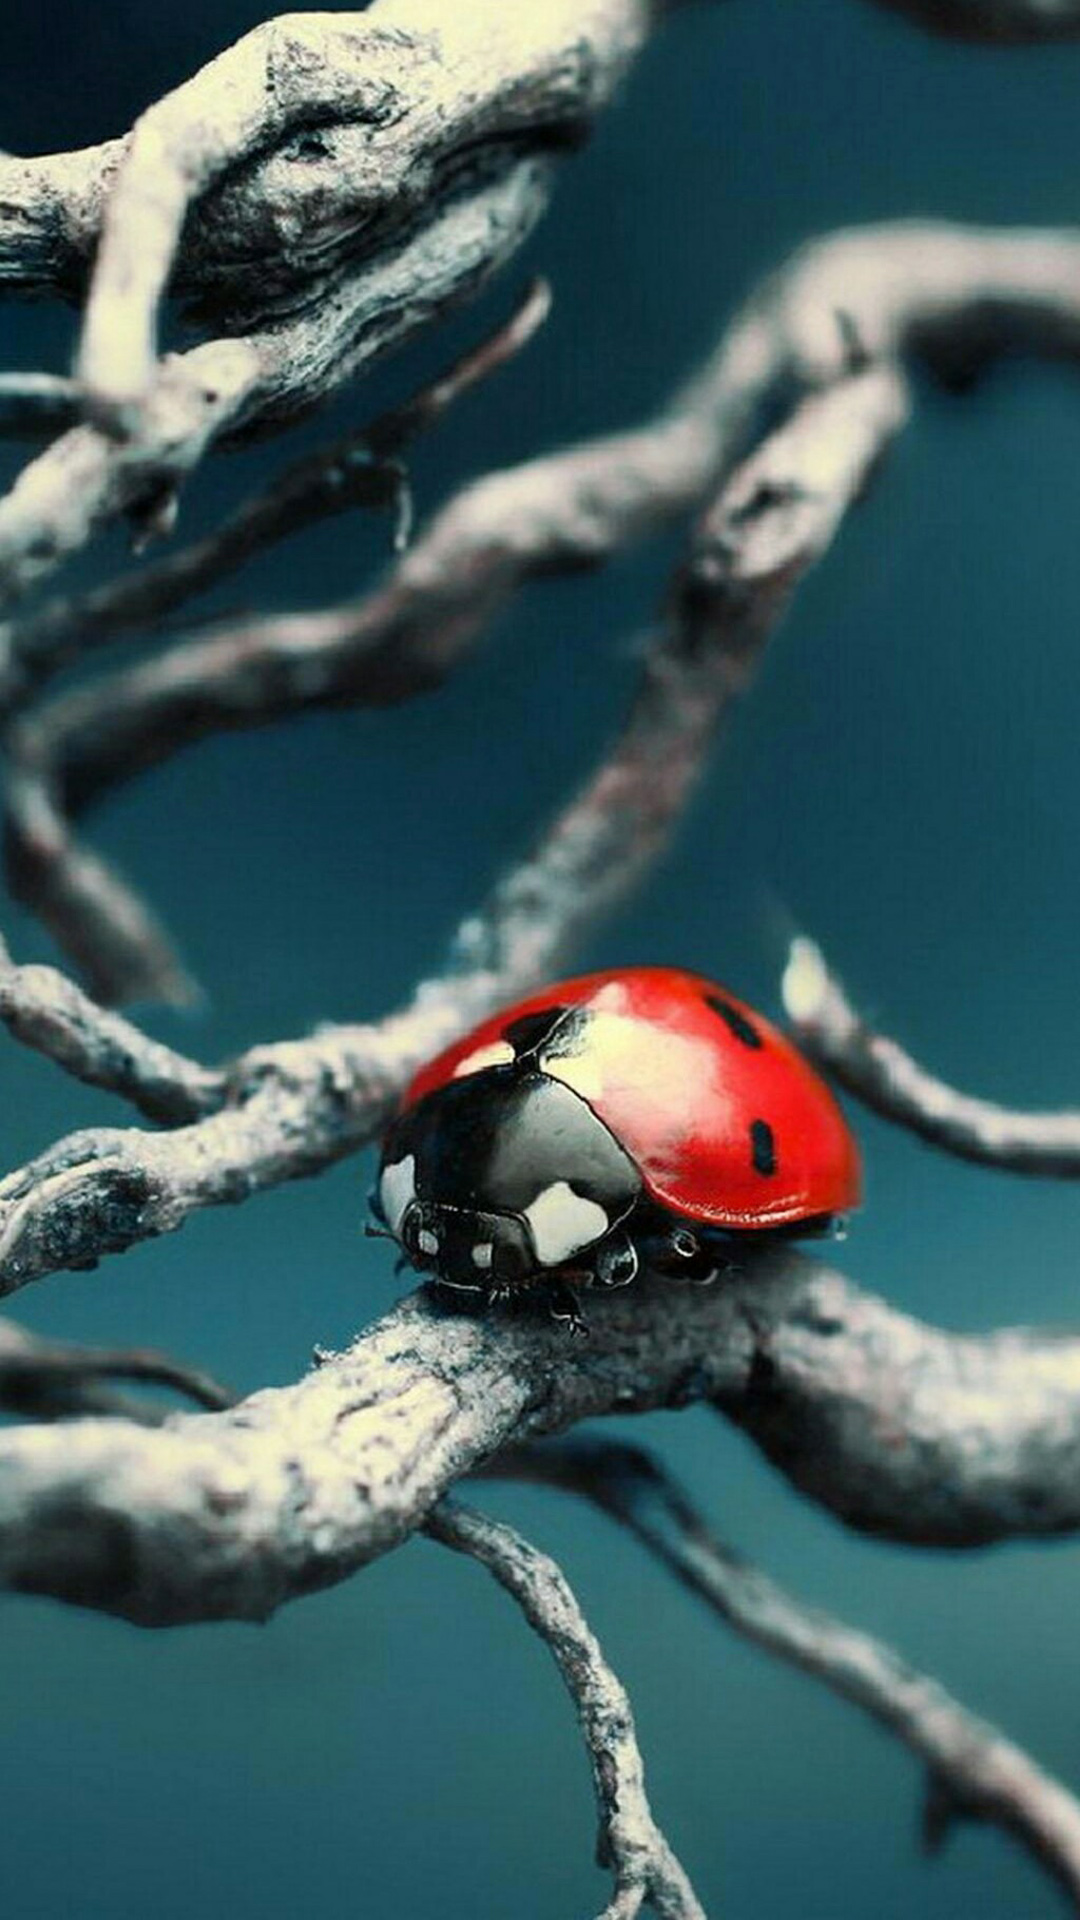 Red & Black Insect